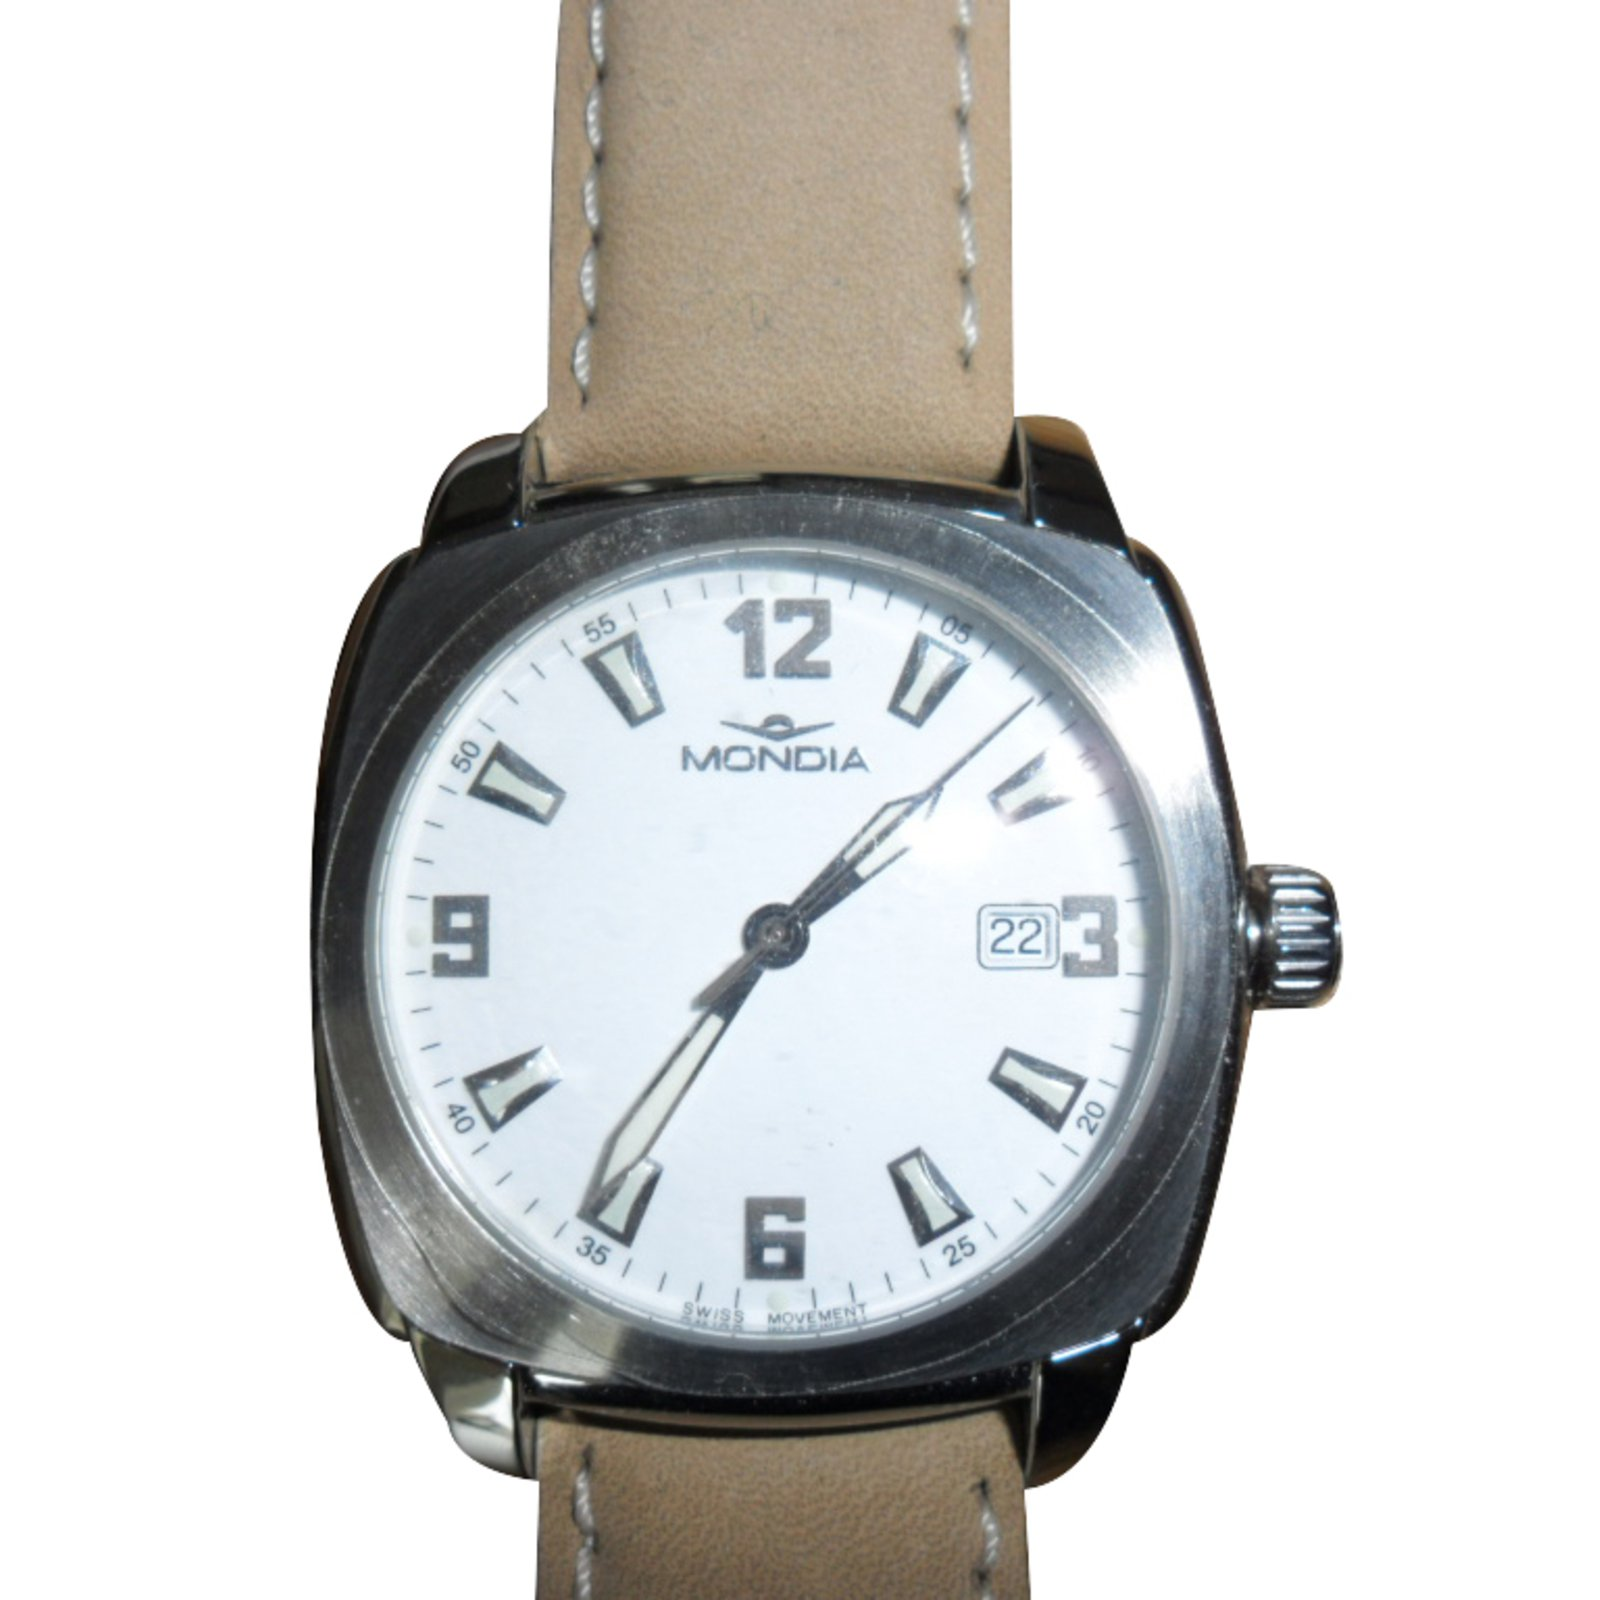 Mondia watches for men